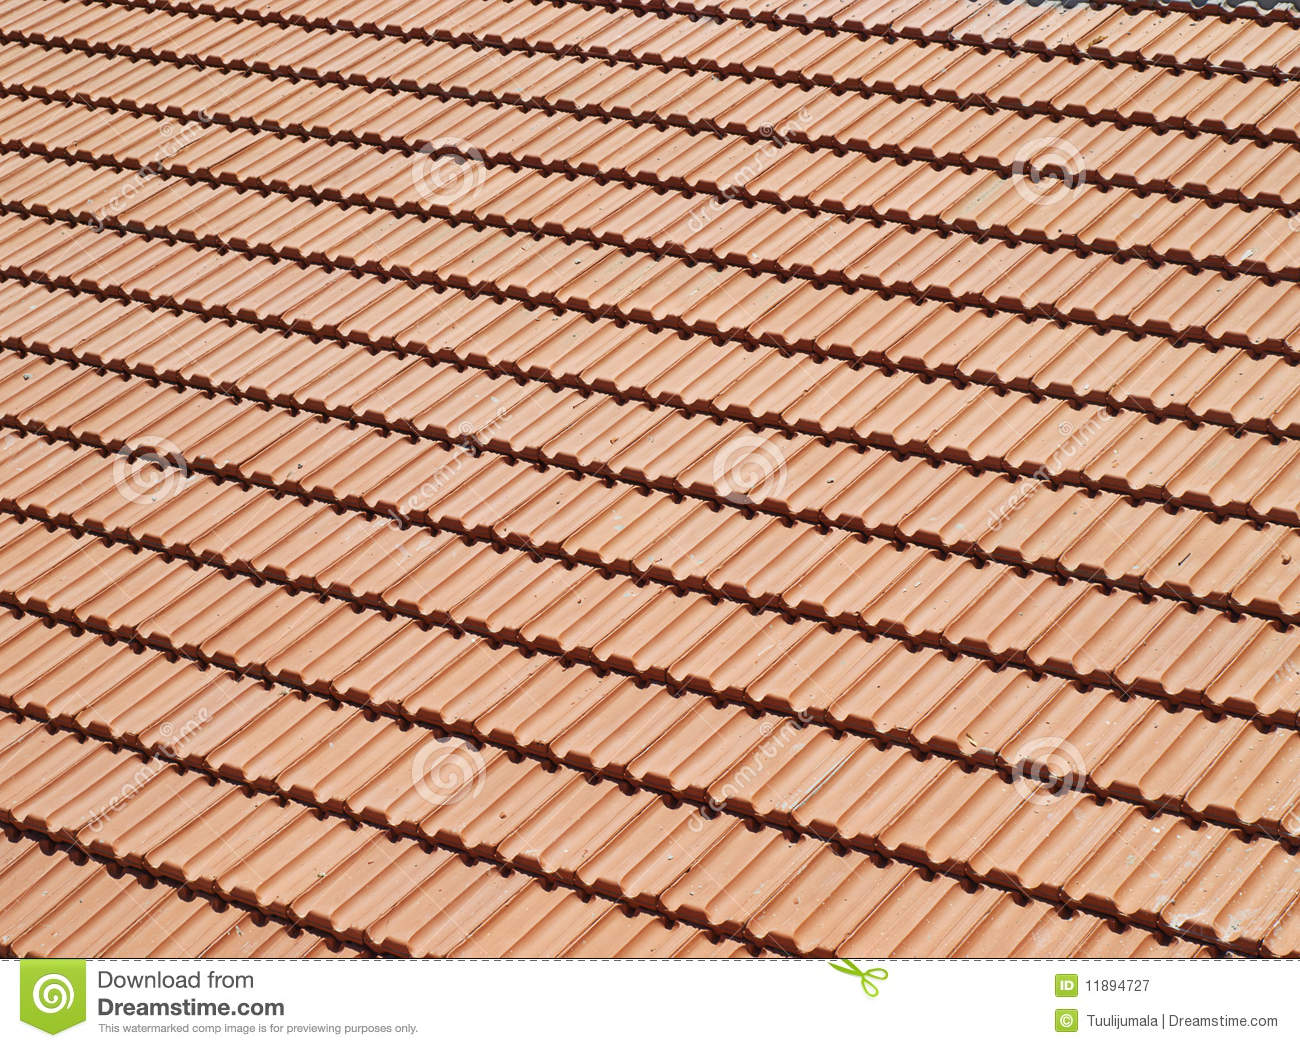 Clay tile roof royalty free stock photography image for Clay tile roofs